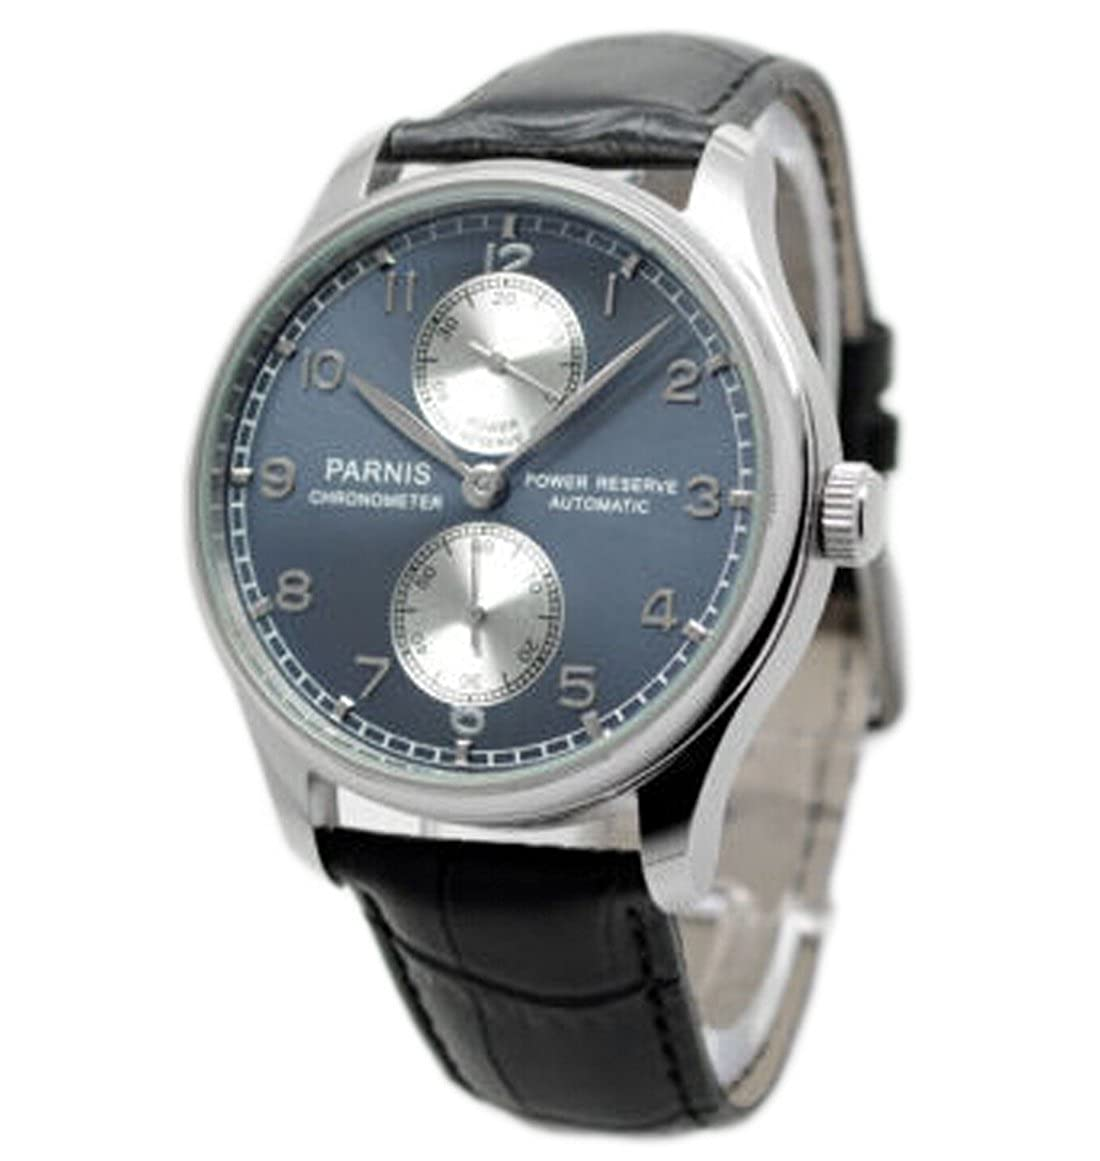 Amazon.com: 43mm Parnis Portuguese Power Reserve Automatic Watch Blue Face Sea-gull Movt P042612: Watches